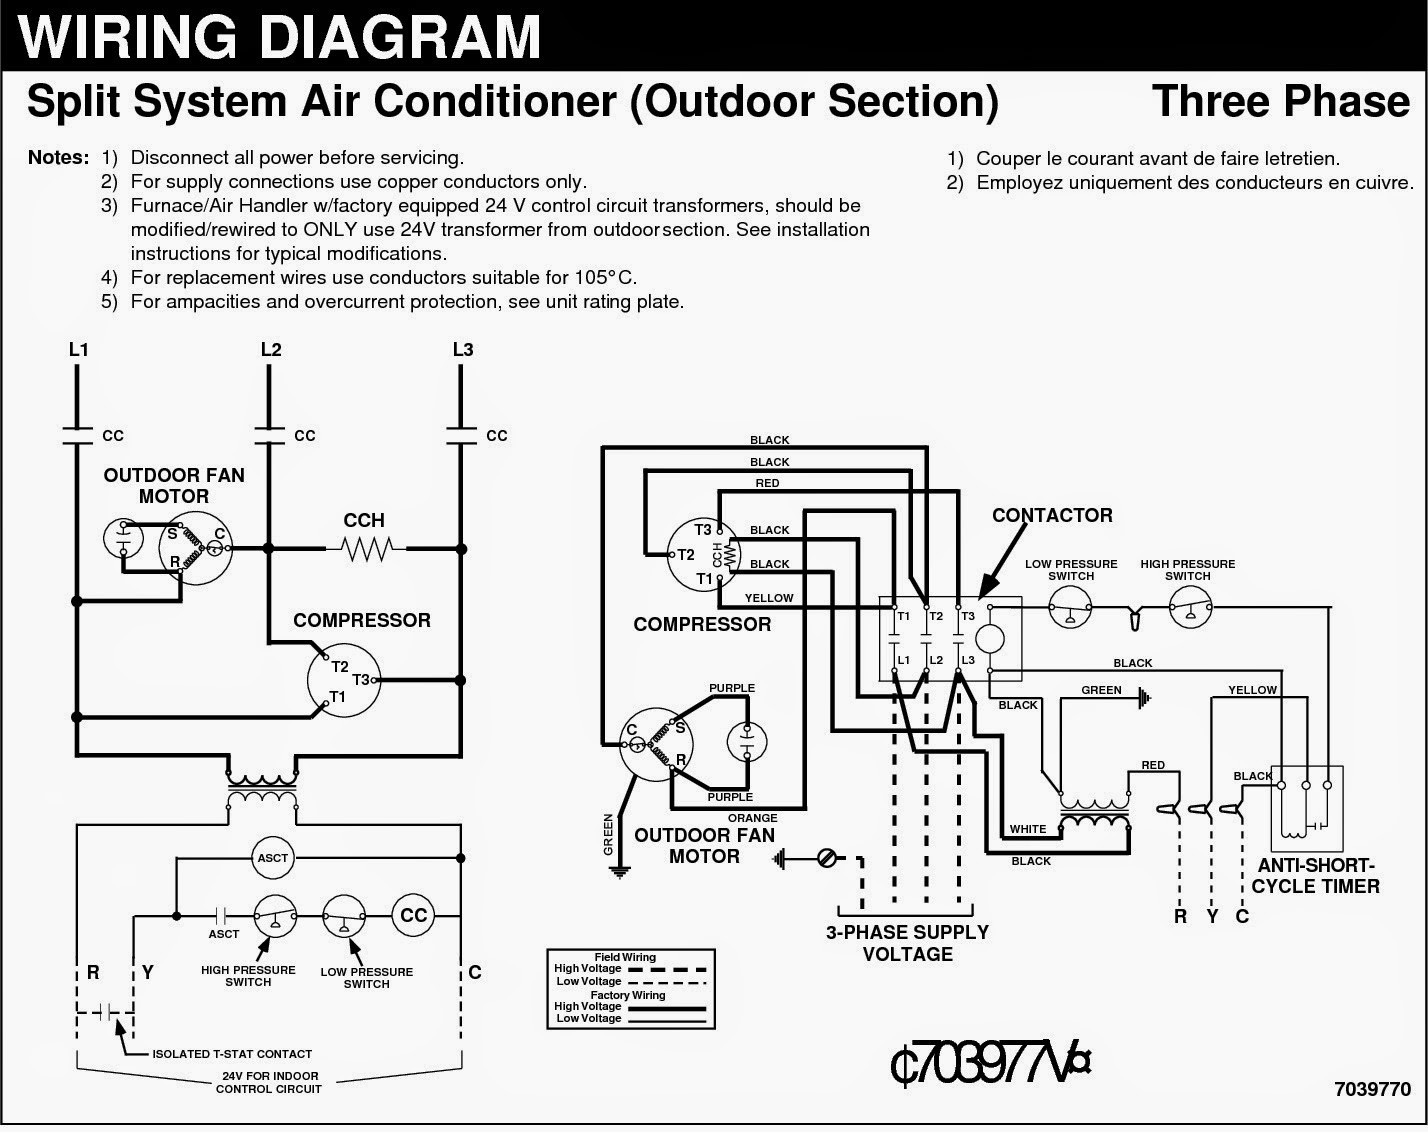 single pole diagram free wiring diagram images power and signal connections [ 1428 x 1132 Pixel ]